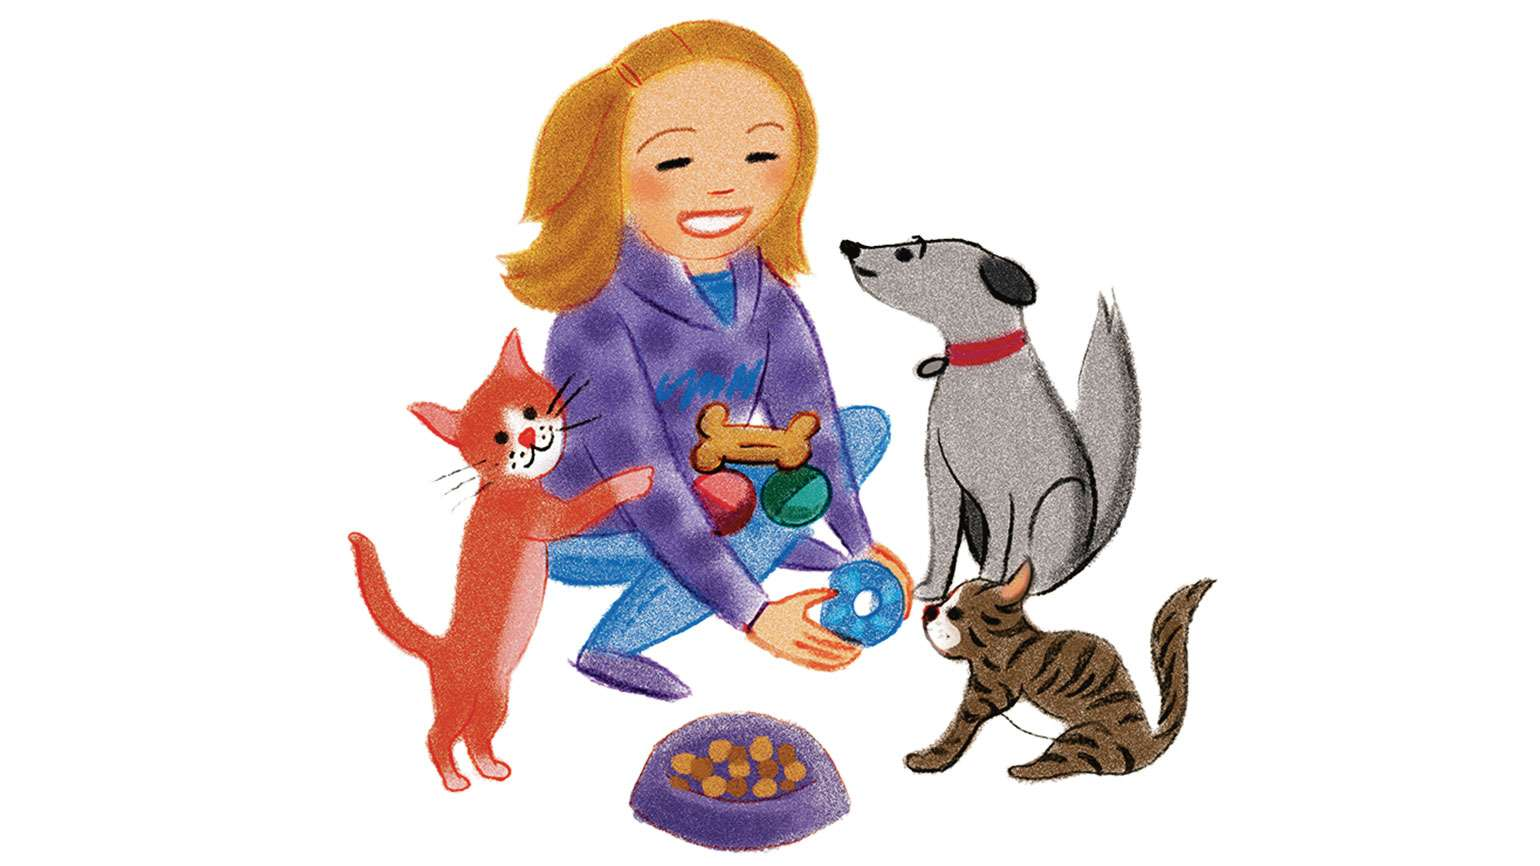 An artist's rendering of a young girl feeding dogs and cats